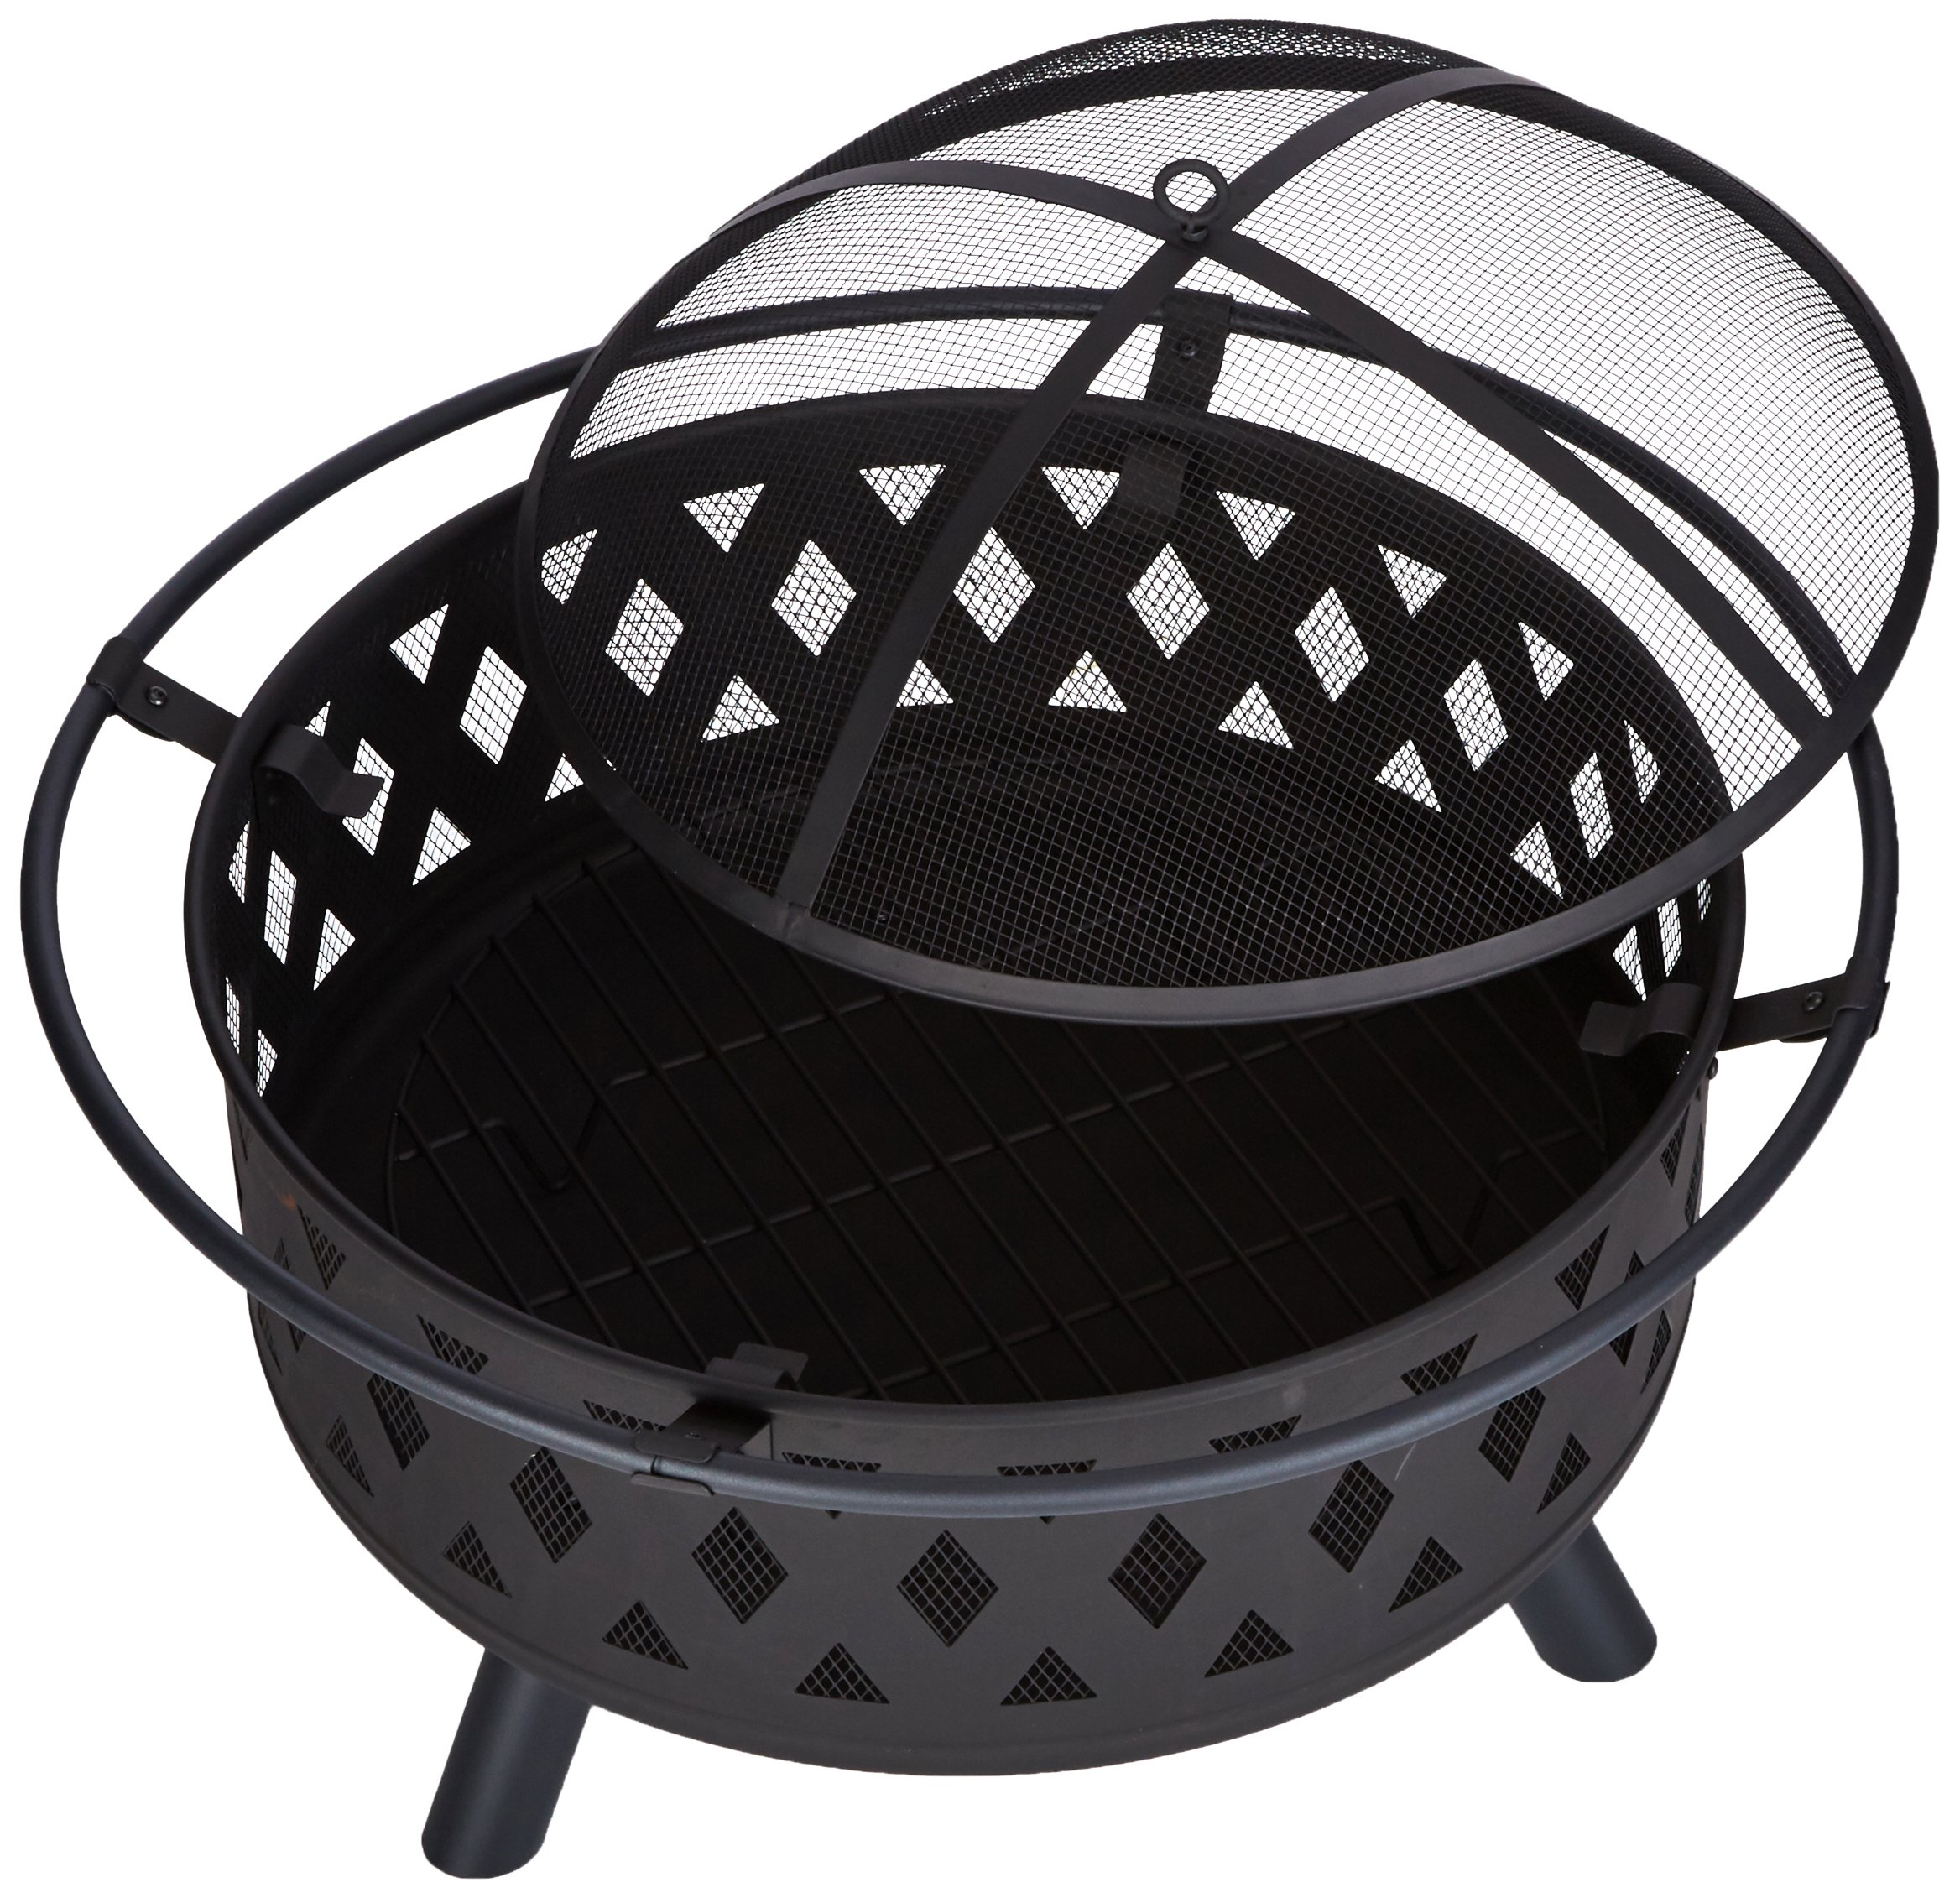 Fire Pit Set, Wood Burning Pit - Includes Screen, Cover and Log Poker - Great for Outdoor and Patio, 32 inch Round Crossweave Firepit by Pure Garden - ULTIMATE OUTDOOR RELAXATION -This Outdoor Fire Pit is an ideal blend of contemporary modern design and natural elements with beautiful cross weave accents. Create lasting memories with family and friends while enjoying a cozy fire. Enjoy roasting s'mores with kids or an adult evening bon fire. The fire pit is sure to be a vivid focal point on your patio or deck for many seasons to come! DURABLE DESIGN-Enjoy your tile wood burning Fire Pit without worry. Made from powder coated steel to resist rust,this fire pit is lightweight and weatherproof for longer lasting outdoor use.The steel leg construction and decorative sturdy design will have long lasting appeal and would be a charming addition to your yard or patio. LOW MAINTENANCE AND EASY SET UP-The Pure Garden Fire Pit is easy to set up and requires very little upkeep. Wood burning for convenient heating. Clean the outside with a slightly damp cloth. No chemicals or cleaning product required. - patio, outdoor-decor, fire-pits-outdoor-fireplaces - 91WPhCCyvqL -